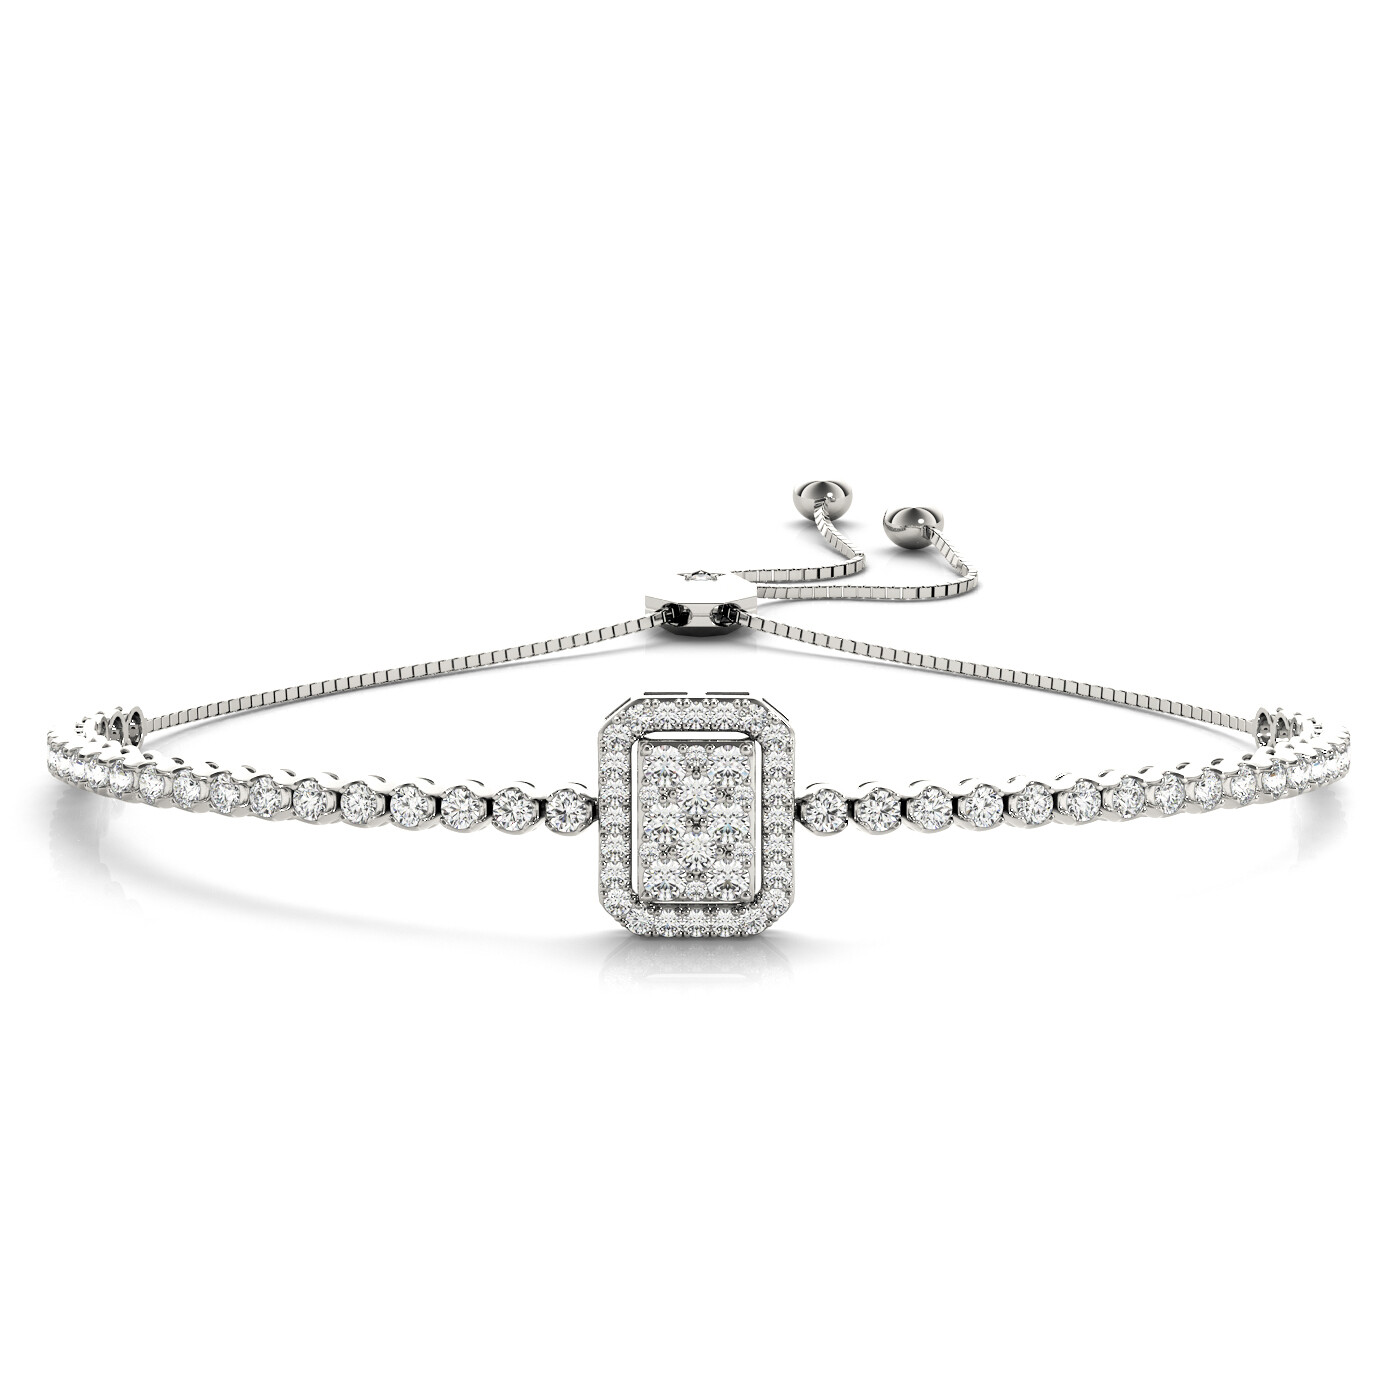 18K Diamond Cluster Tennis Adjustable Bracelet,Diamond Bolo Bracelet